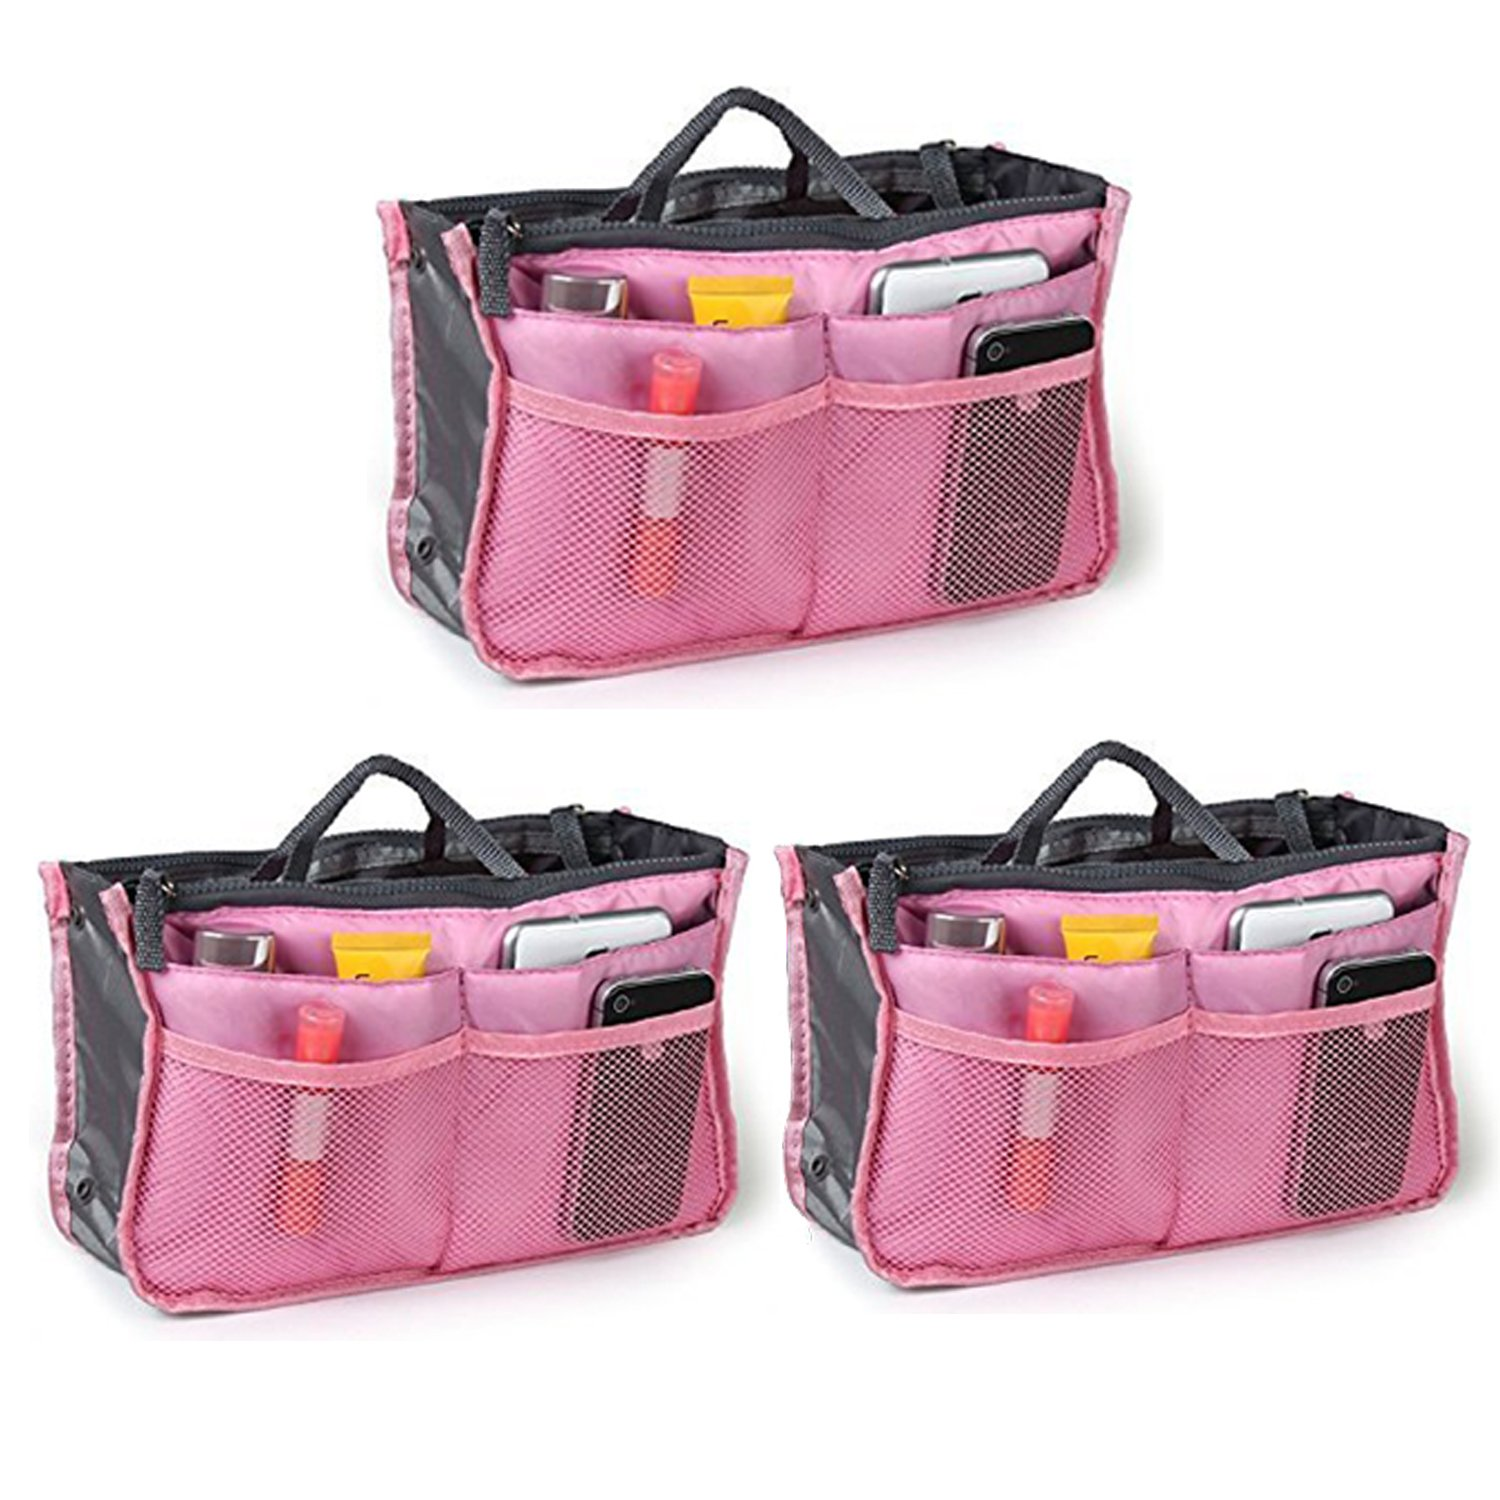 Go Beyond (TM) Travel Insert Organizer Compartment Bag Handbag Purse Large Liner Insert-Organizer Tote Bag (Bundle of 3 Pink)